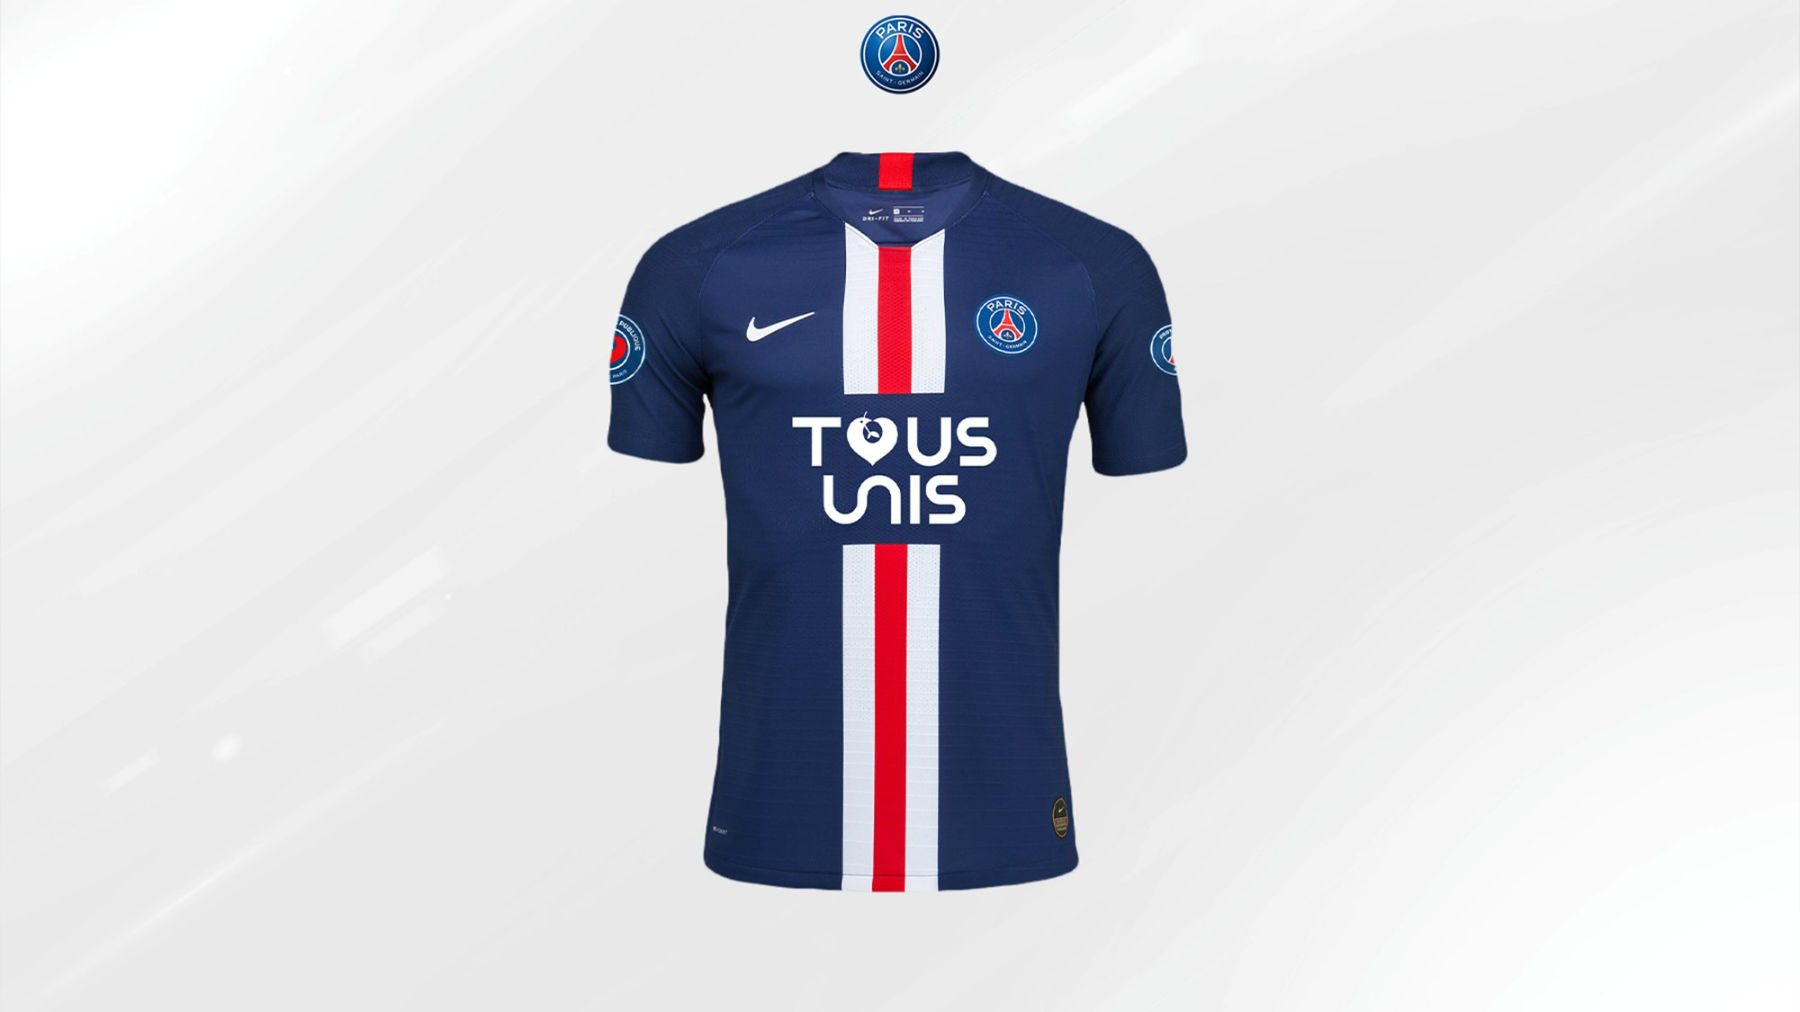 Psg Release All Together Jersey To Aid Healthcare Professionals During Coronavirus Crisis Psg Talk